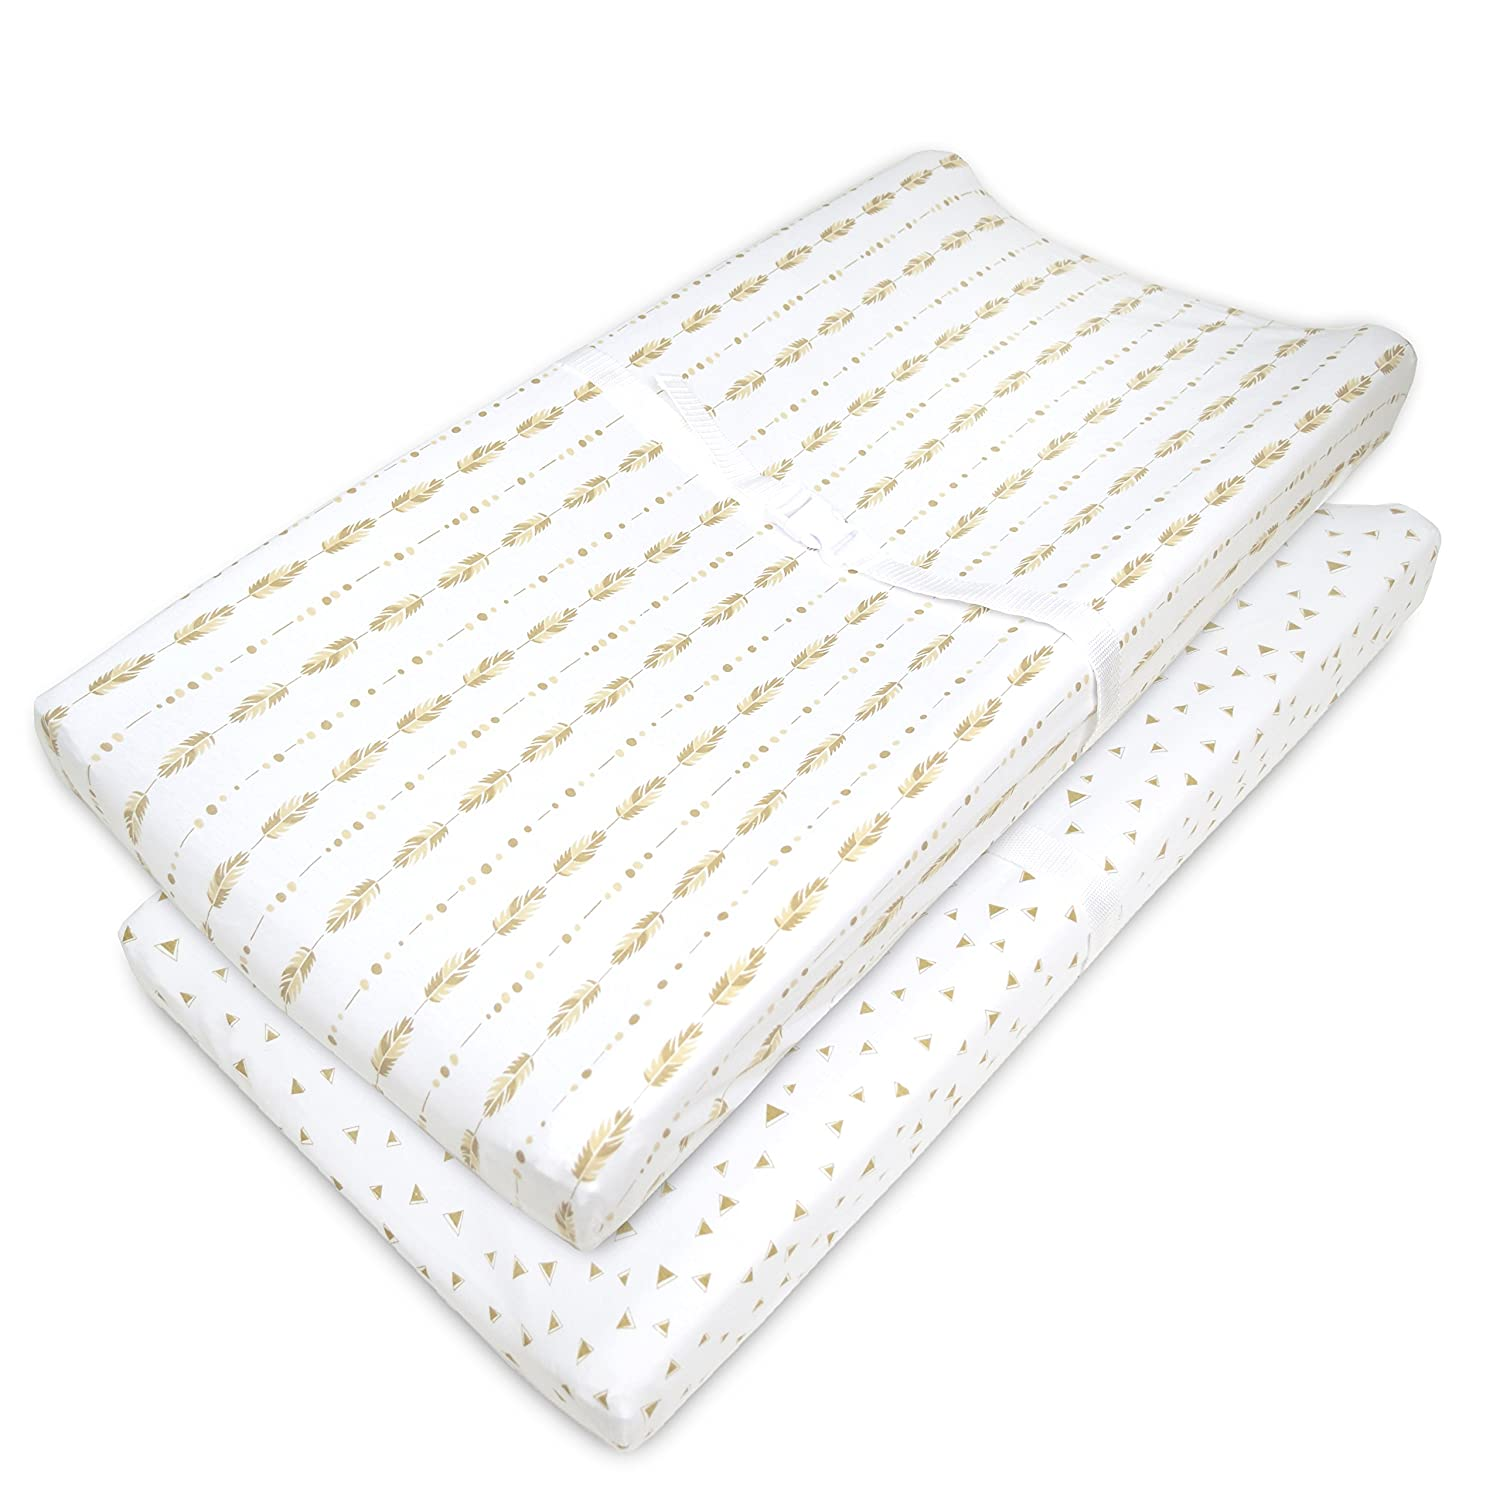 American Baby Company Printed 100% Cotton Jersey Knit Fitted Contoured Changing Table Pad Cover, also works with Travel Lite Mattress,Sparkle Gold/Pink Feathers 3555-GP/FE